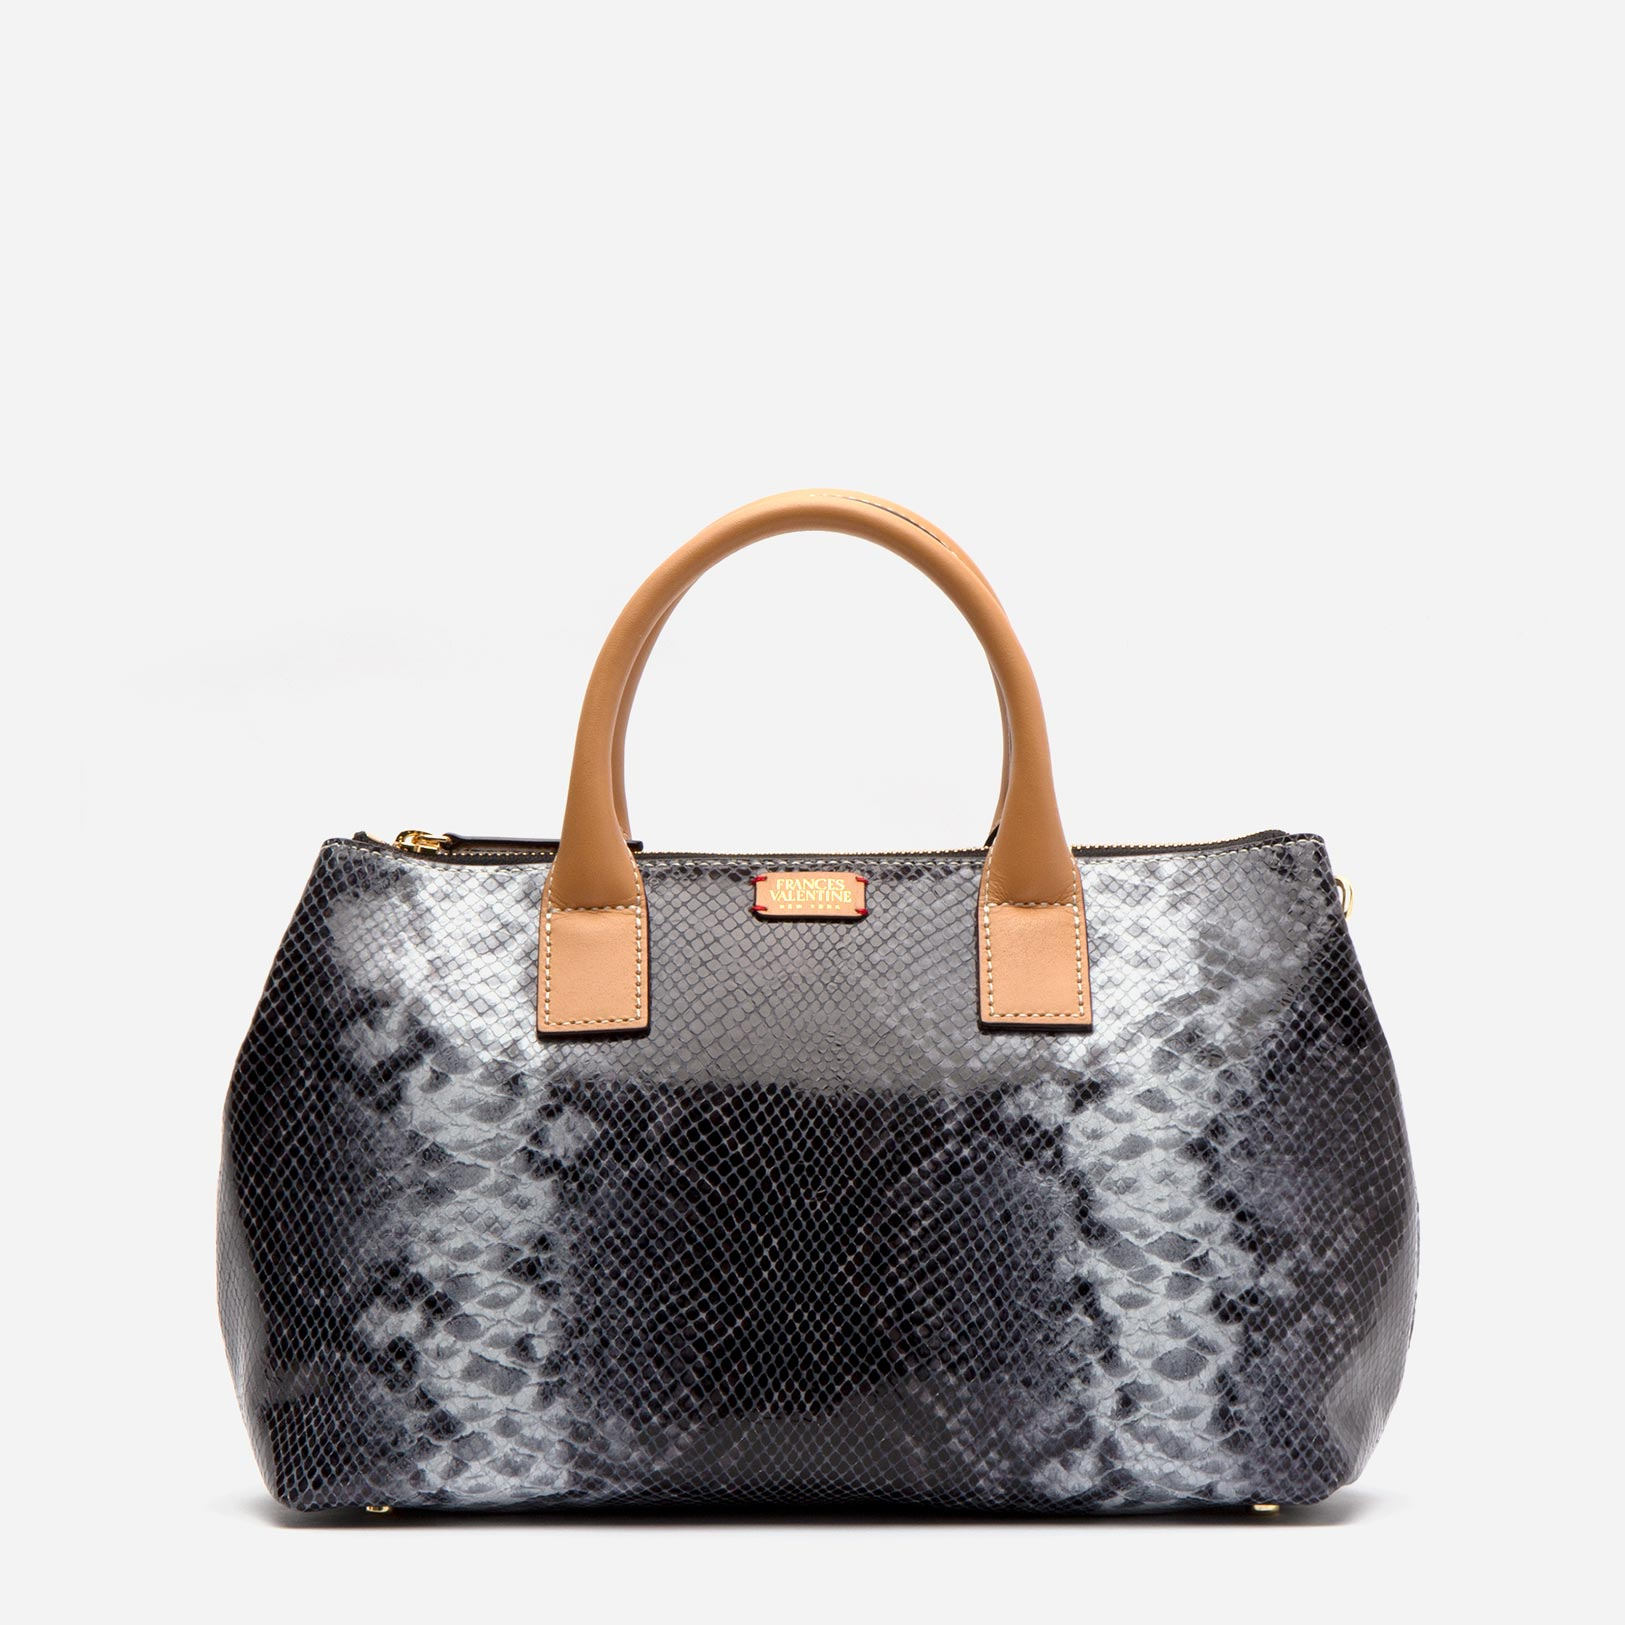 Tilly Tote Stripe Snake Leather Roccia